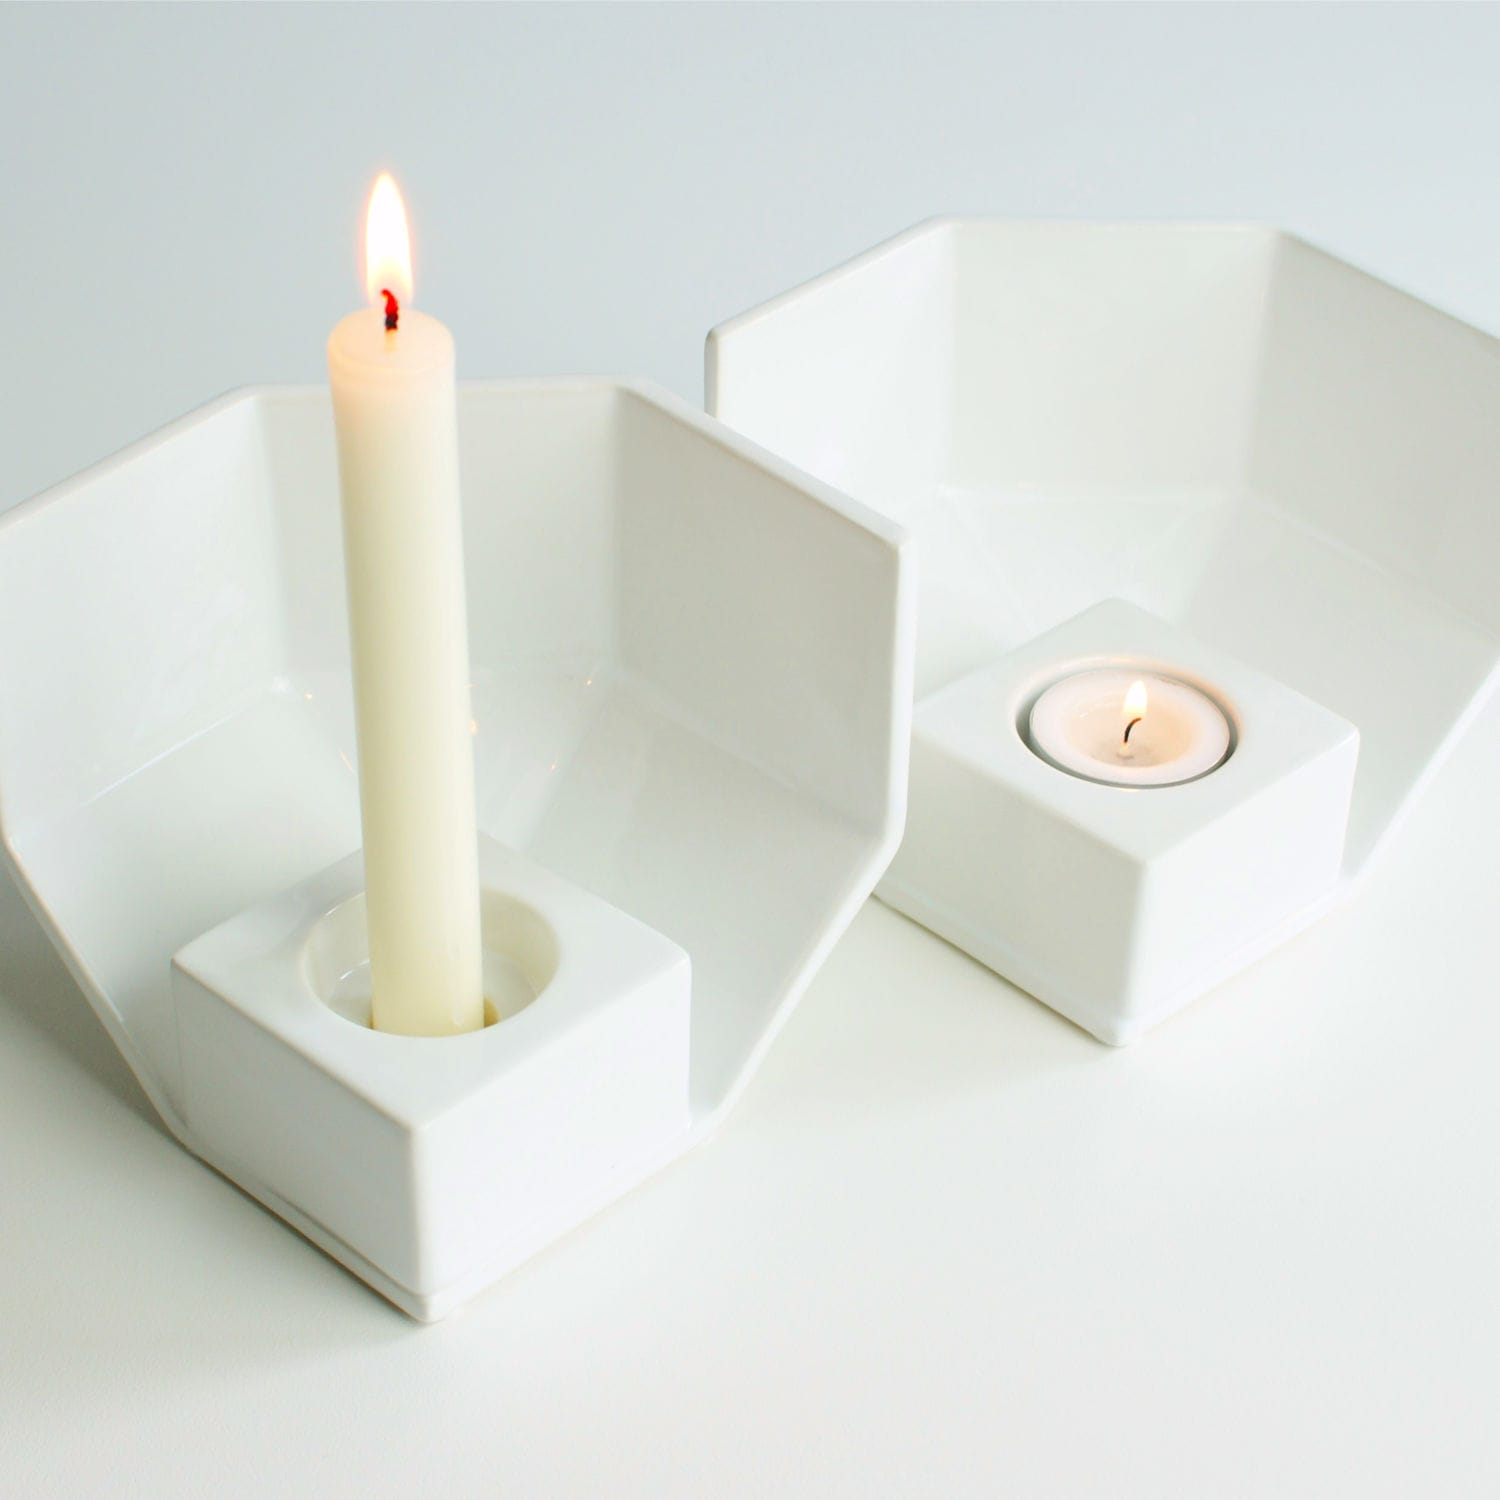 Handmade Candle Stand Designs : Off handmade unique design glass candle holder wedding